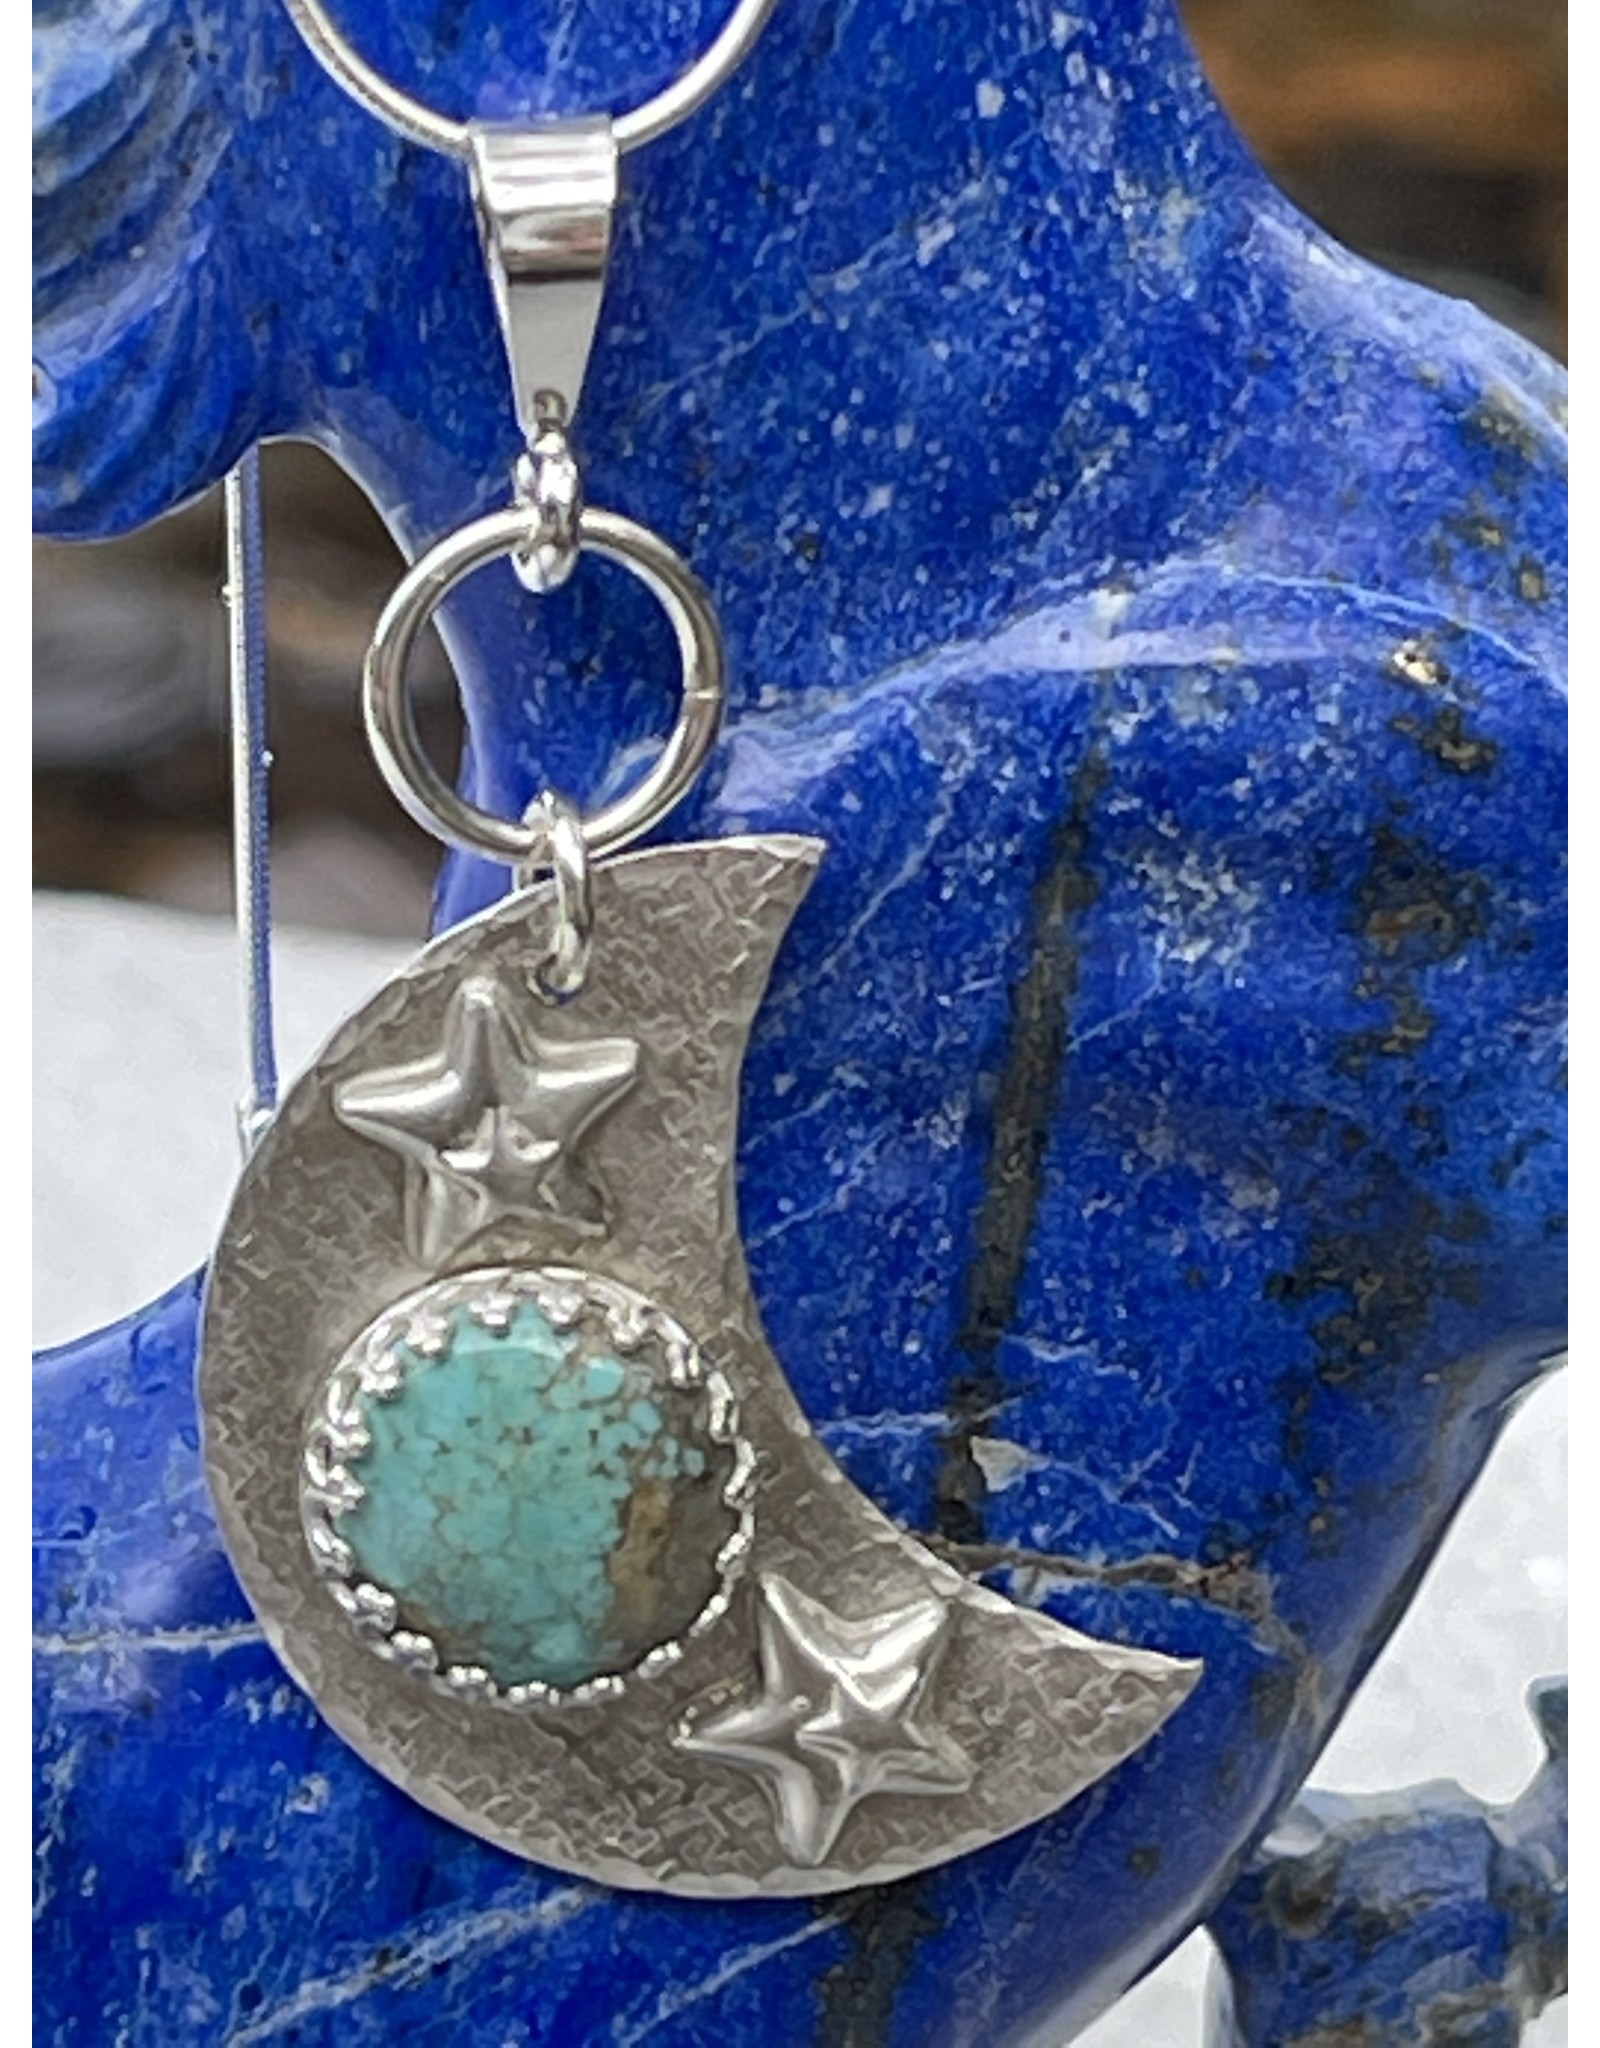 Annette Colby - Jeweler Sterling Crescent Moon & Stars Turquoise Necklace - Annette Colby